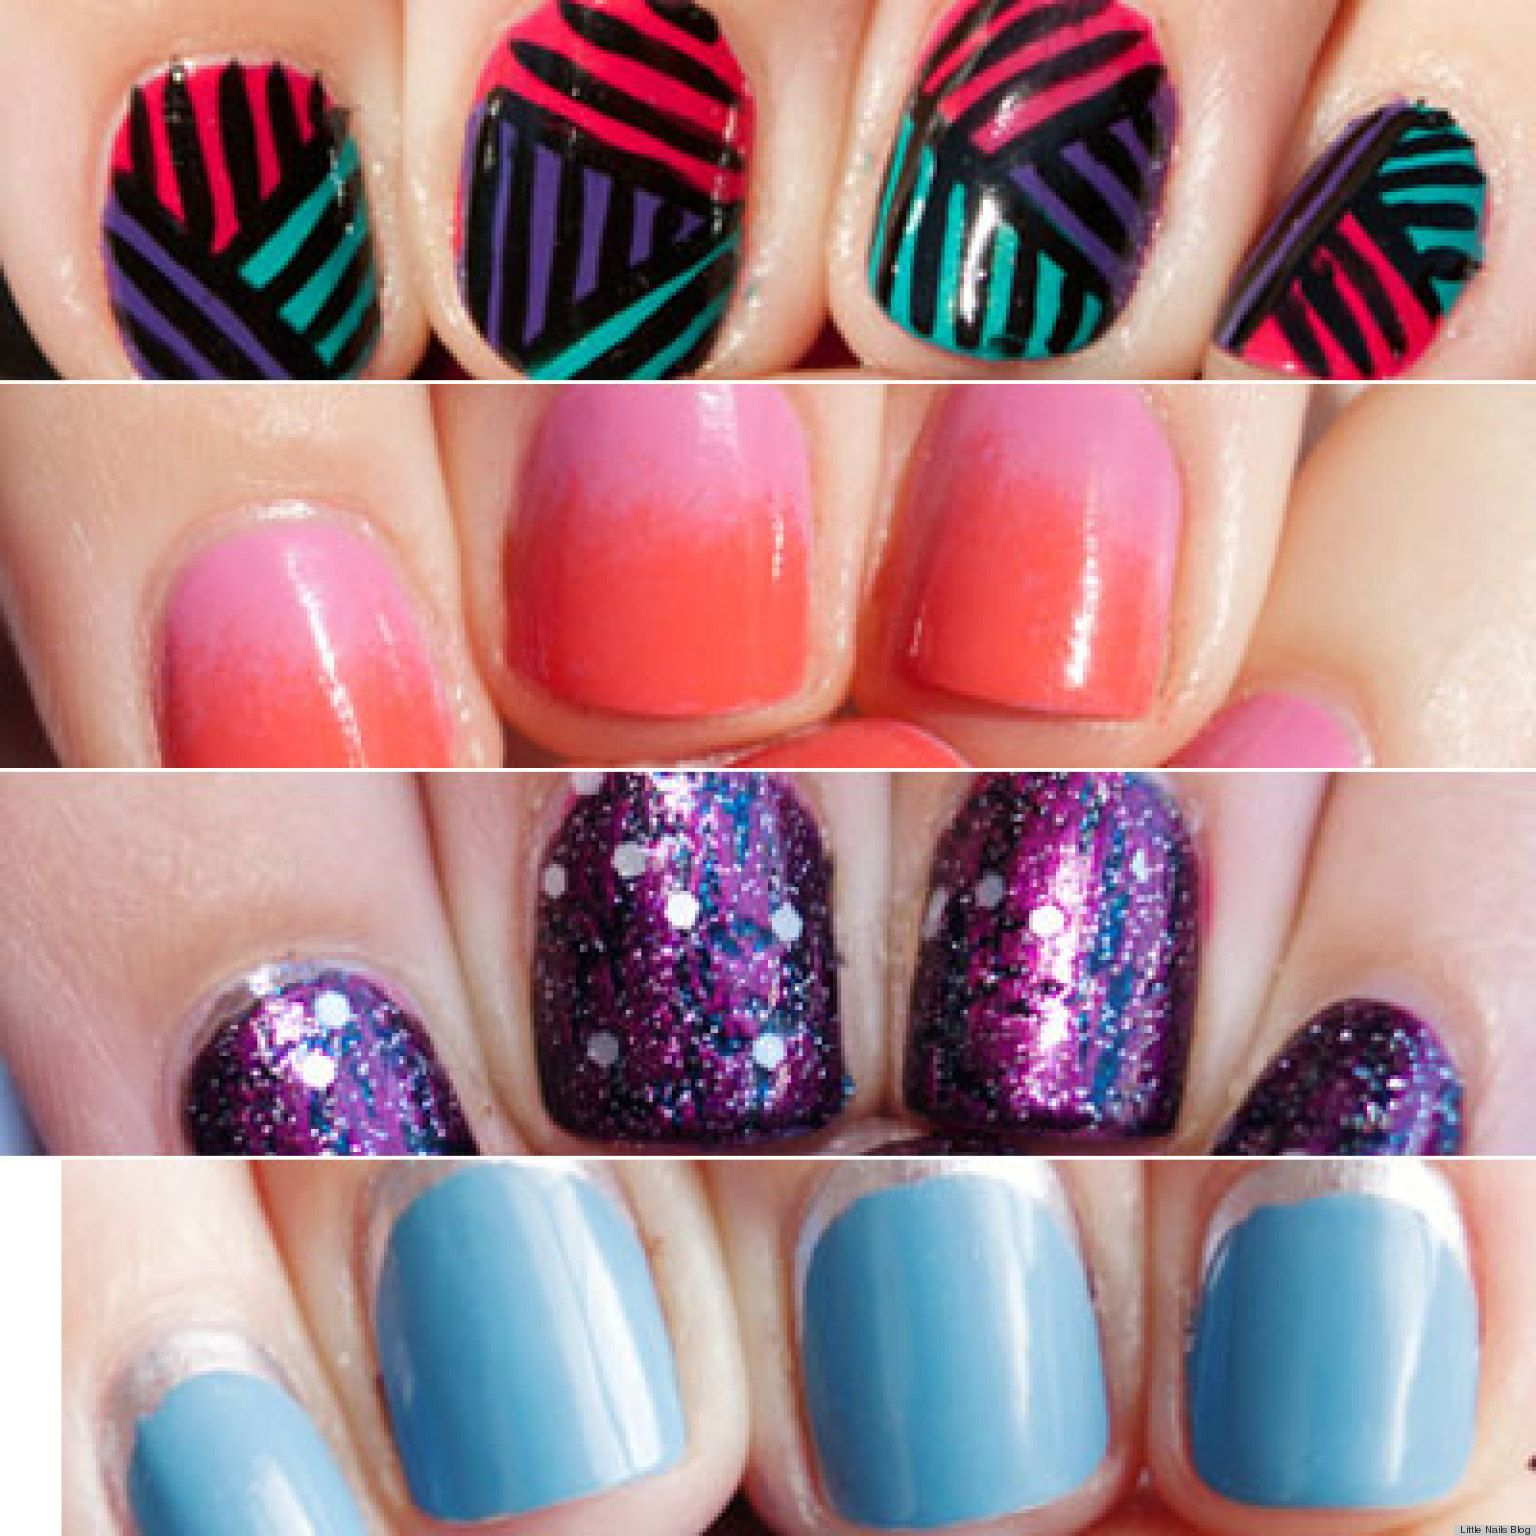 Beau Explore Easy Nail Designs, Nail Designs 2014, And More!